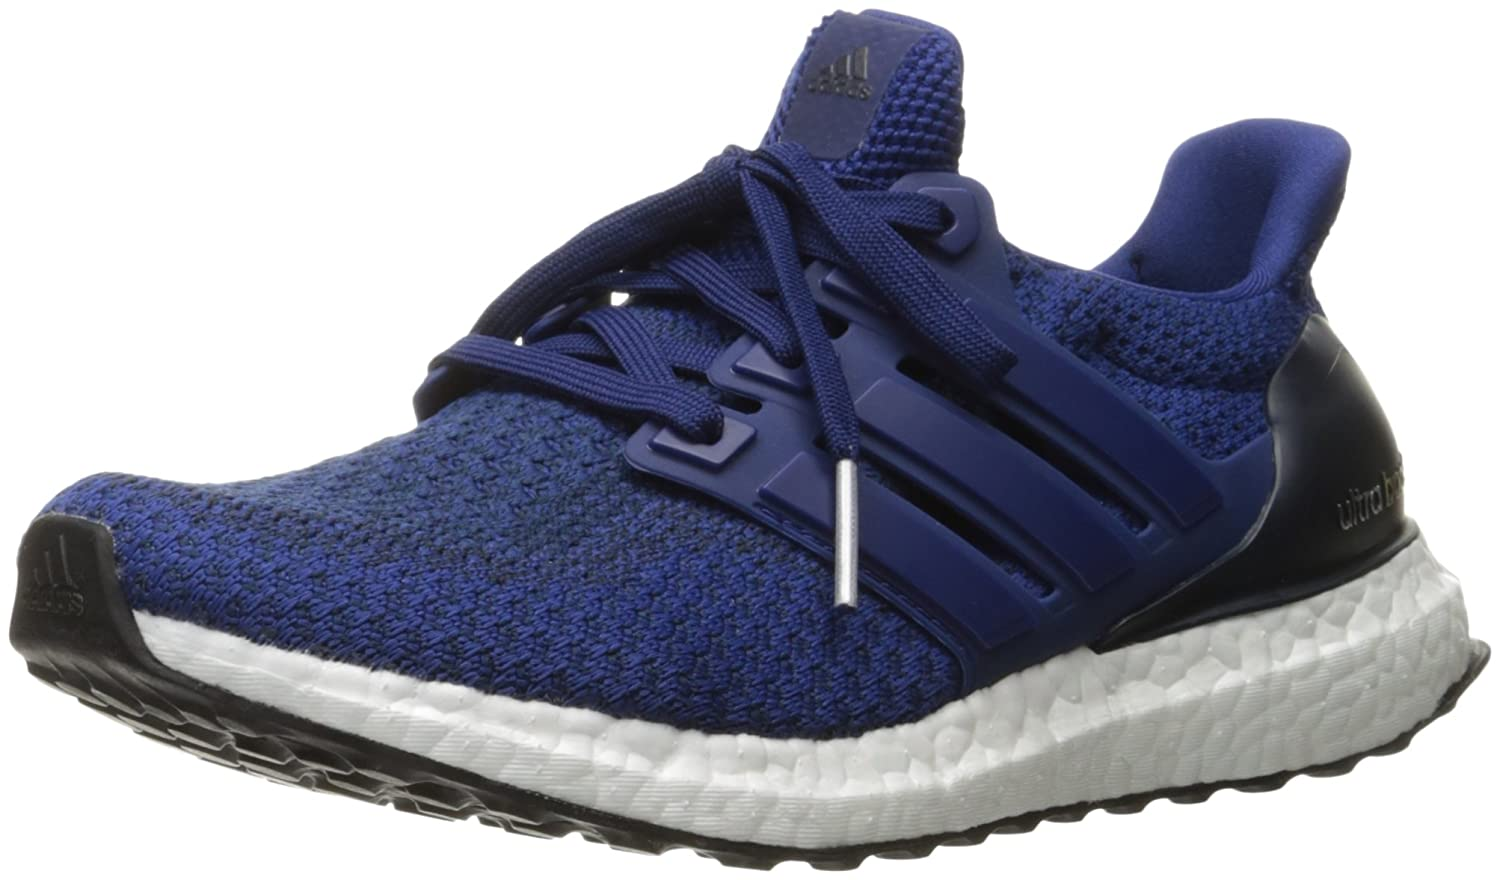 adidas Women's Ultraboost W Running Shoe B01FH6080I 10 B(M) US|Unity Ink/Unity Ink/Dark Navy